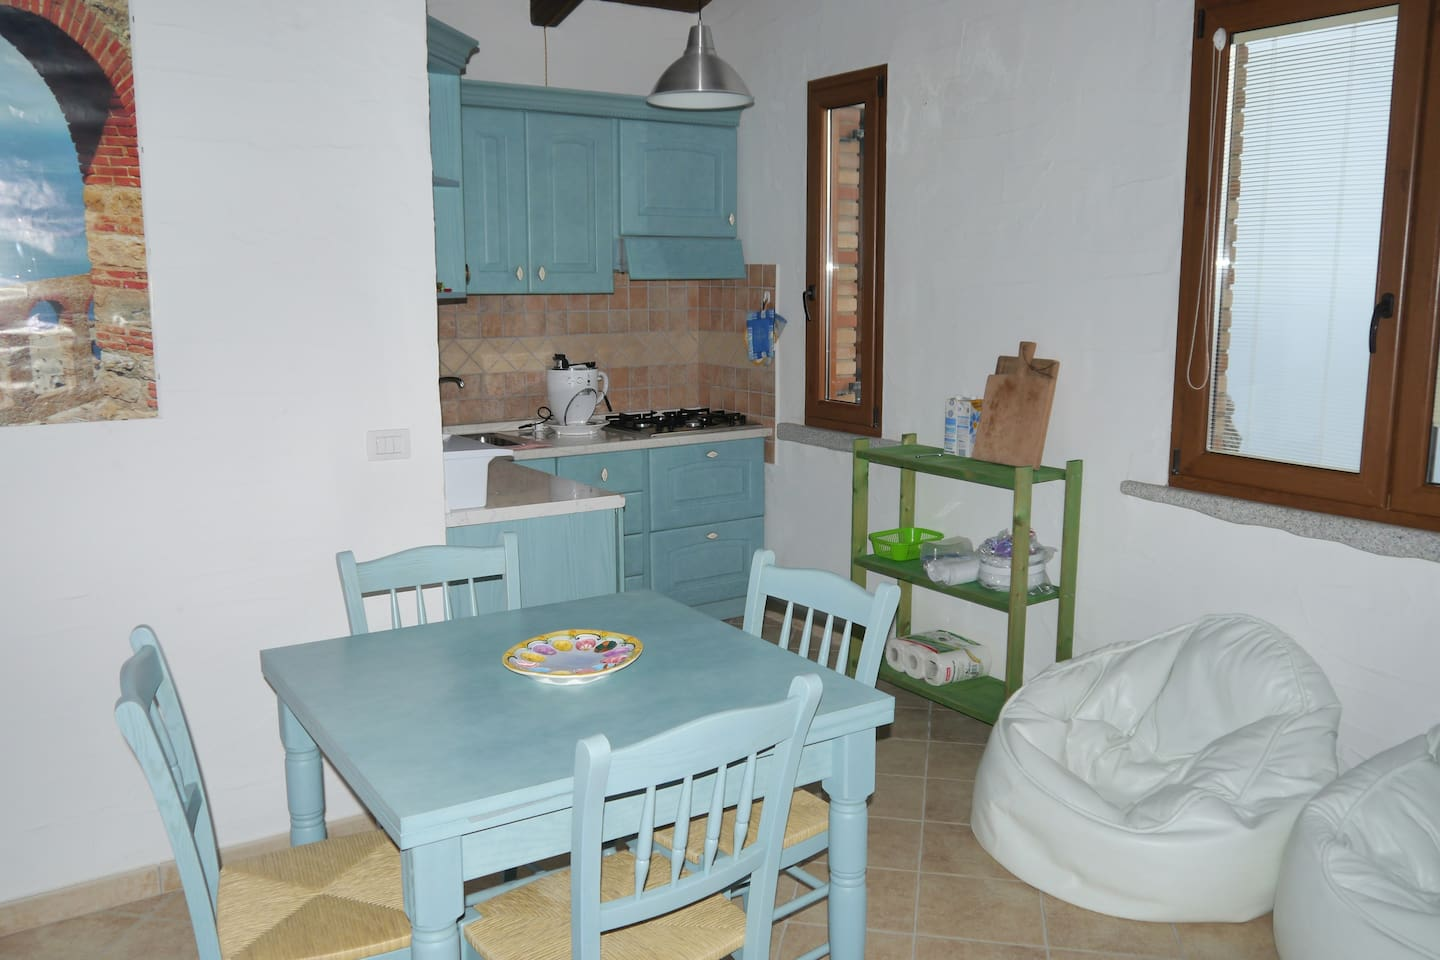 Villetta in villaggio turistico - Villas for Rent in Nebida ...